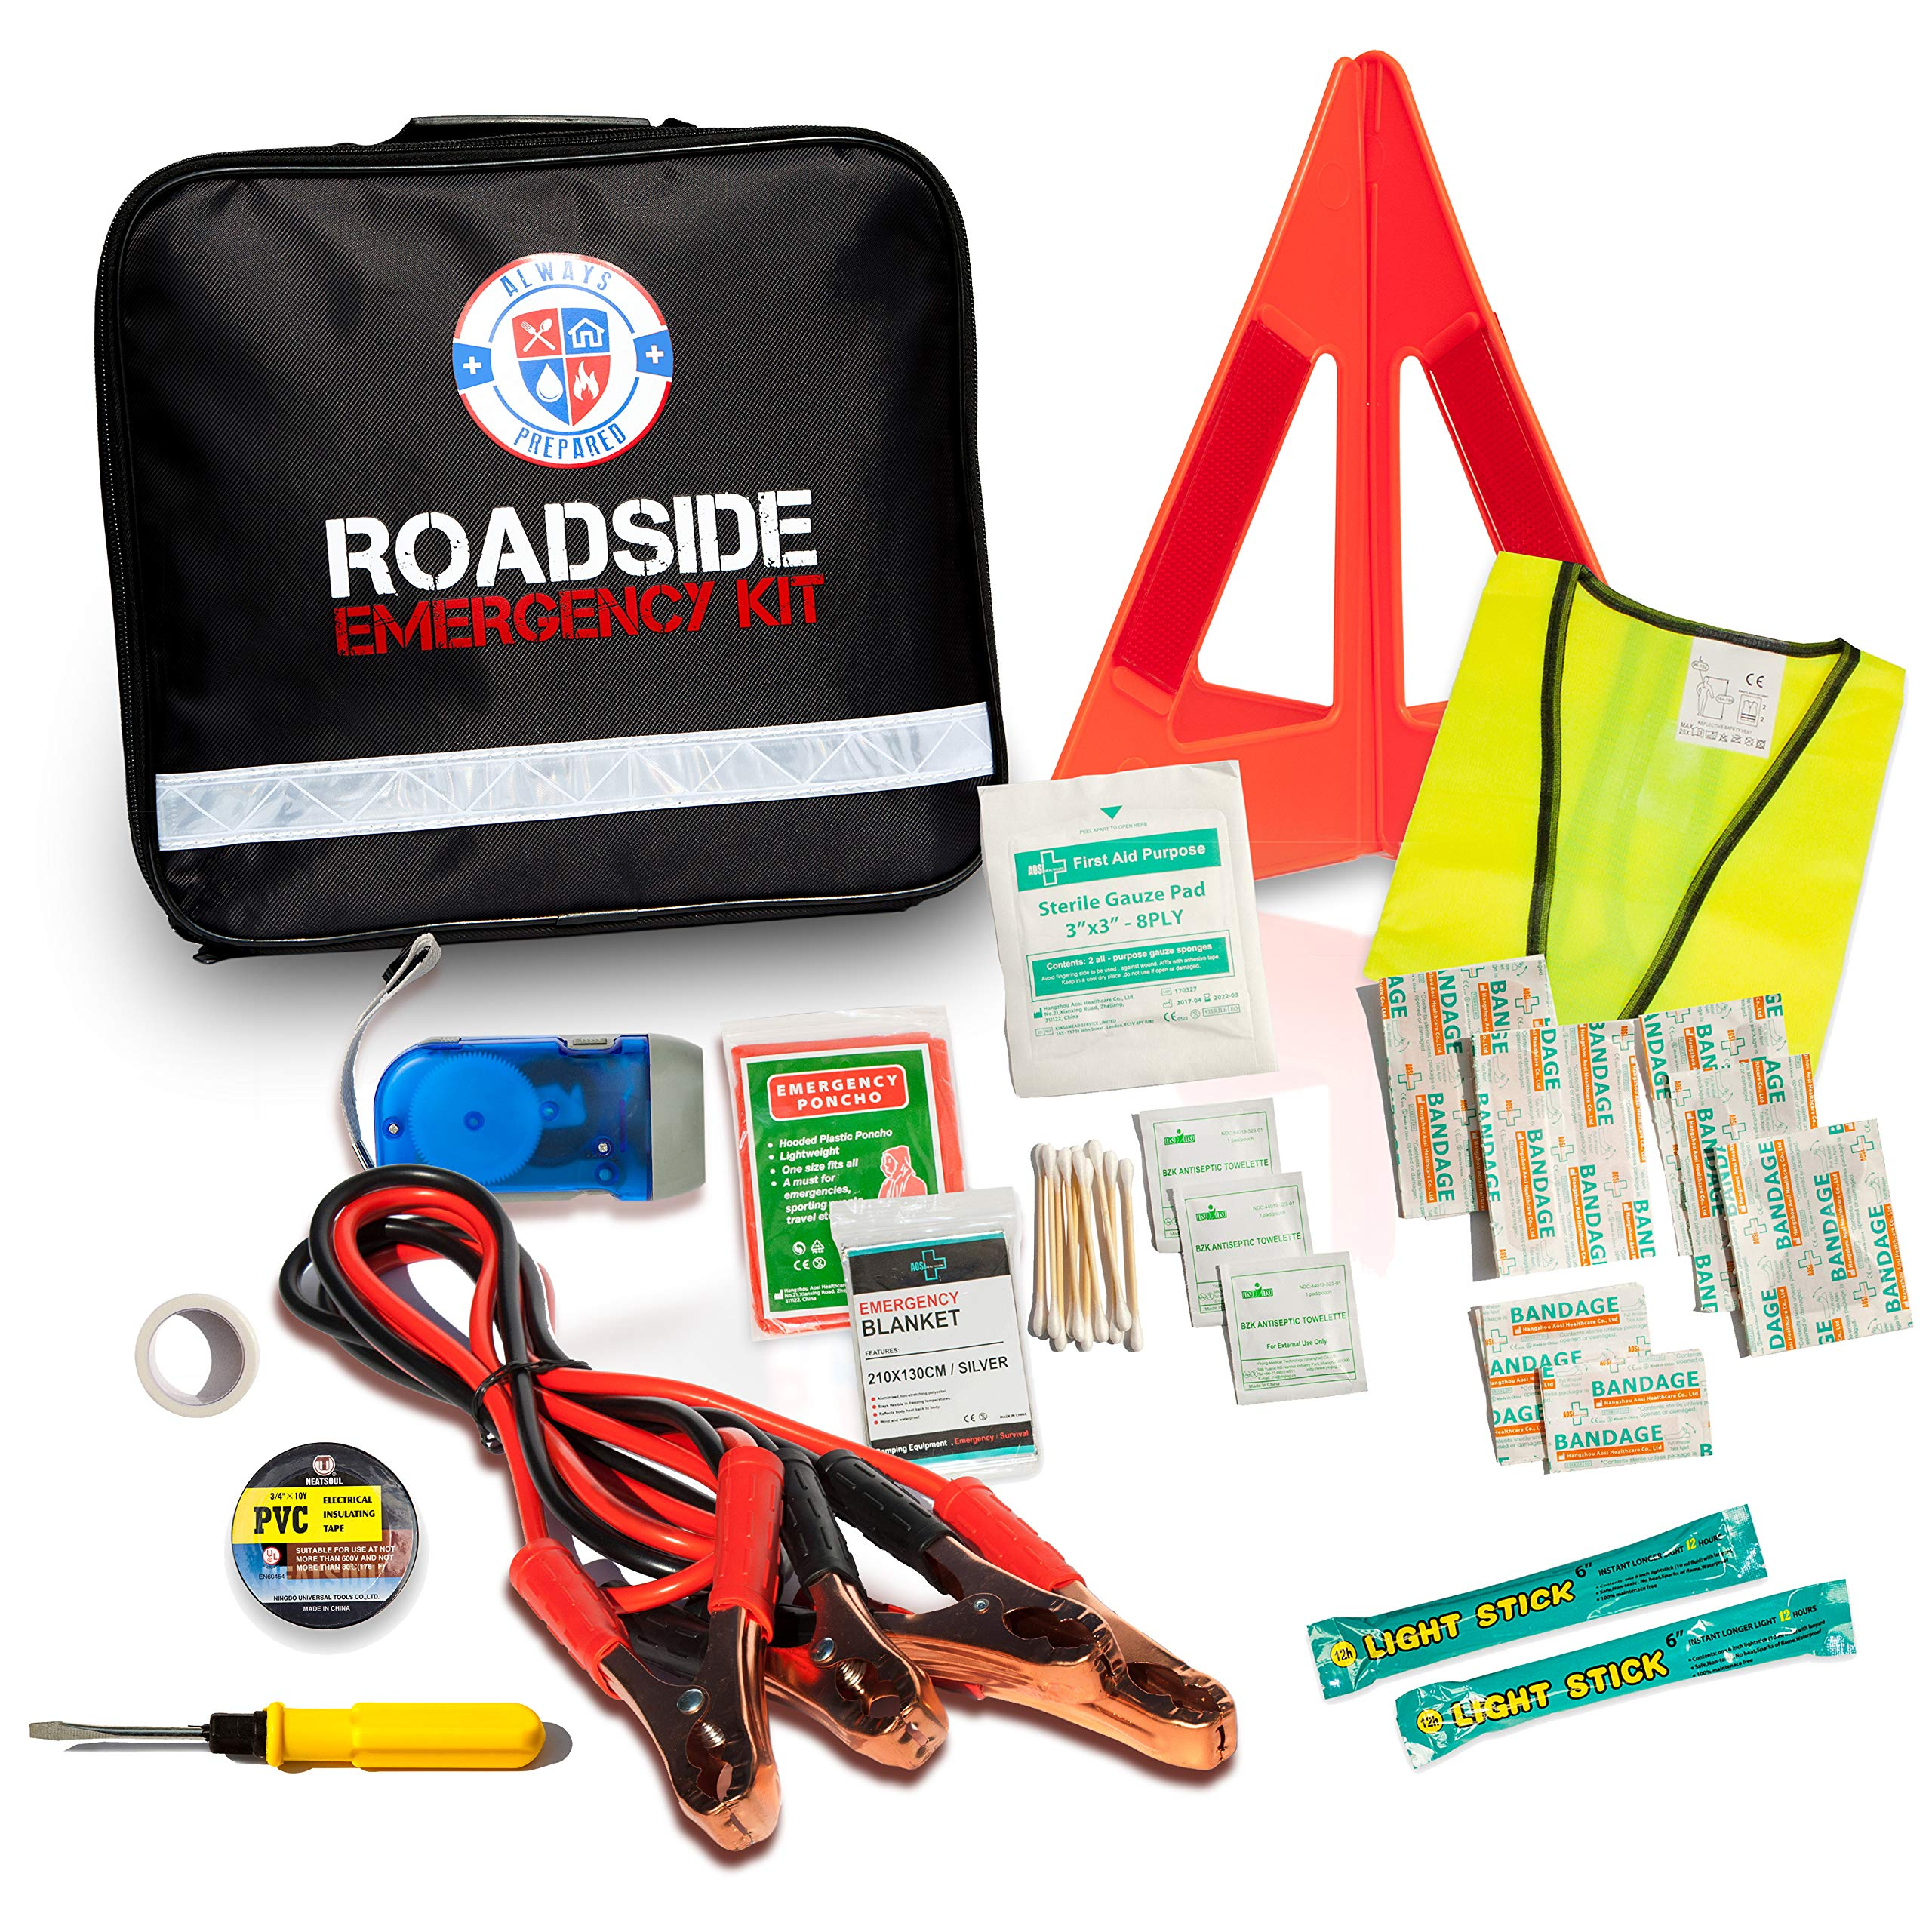 62 Piece Safety Roadside Assistance Kit - All-in-One Car First Aid Emergency Kit - Roadside Assistance Auto Emergency Kit - Premium Car Kits Emergency - Perfect New Car Gift